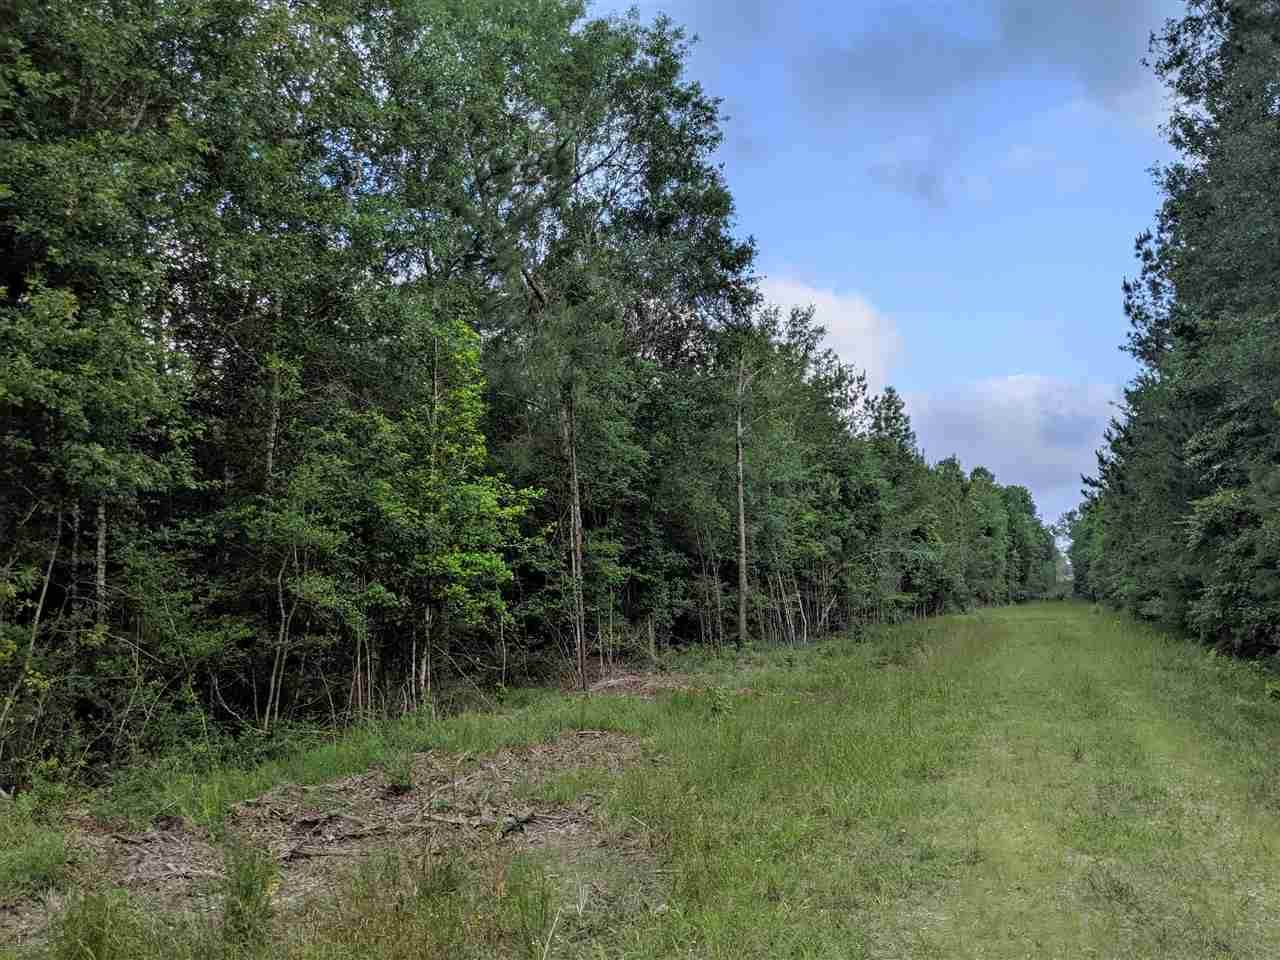 000 Whispering Pines Dr - Photo 1